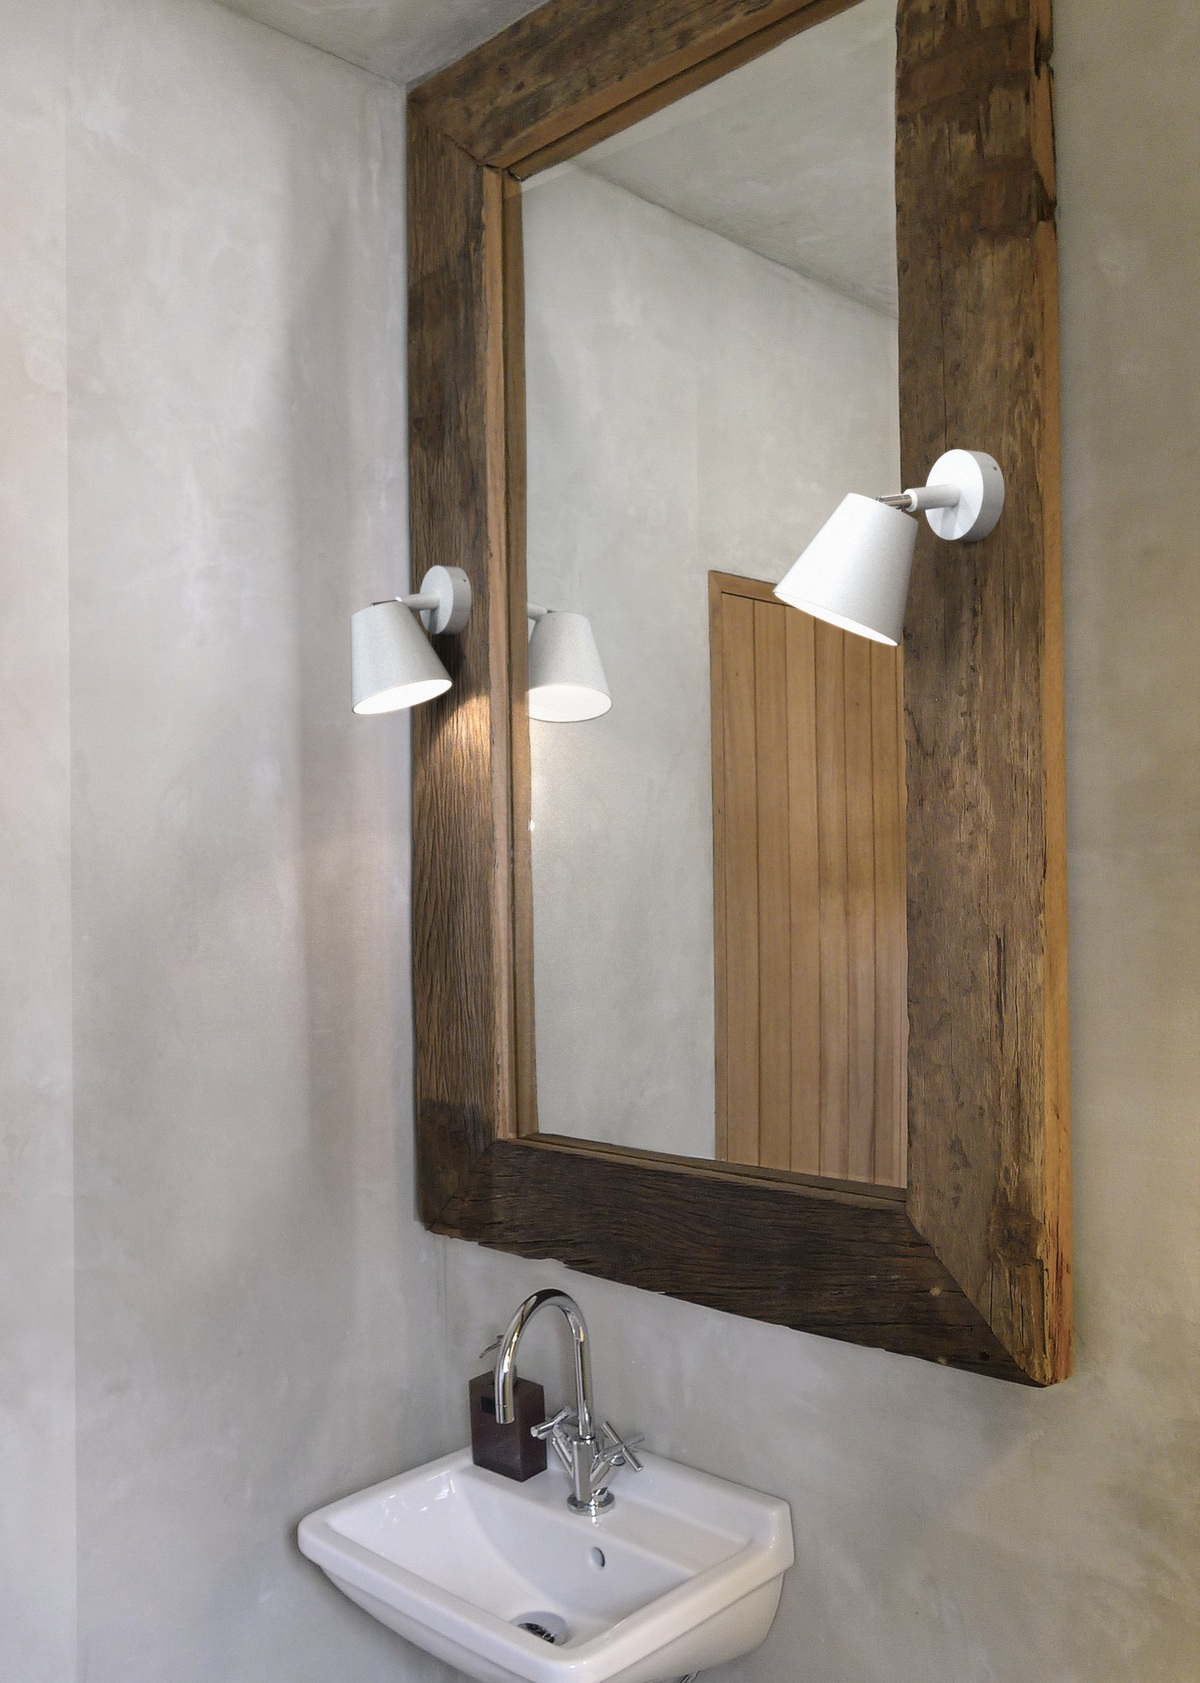 Lighting For Small Bathrooms To Wall Spotlights The Best Lighting Solutions For Small Bathroom